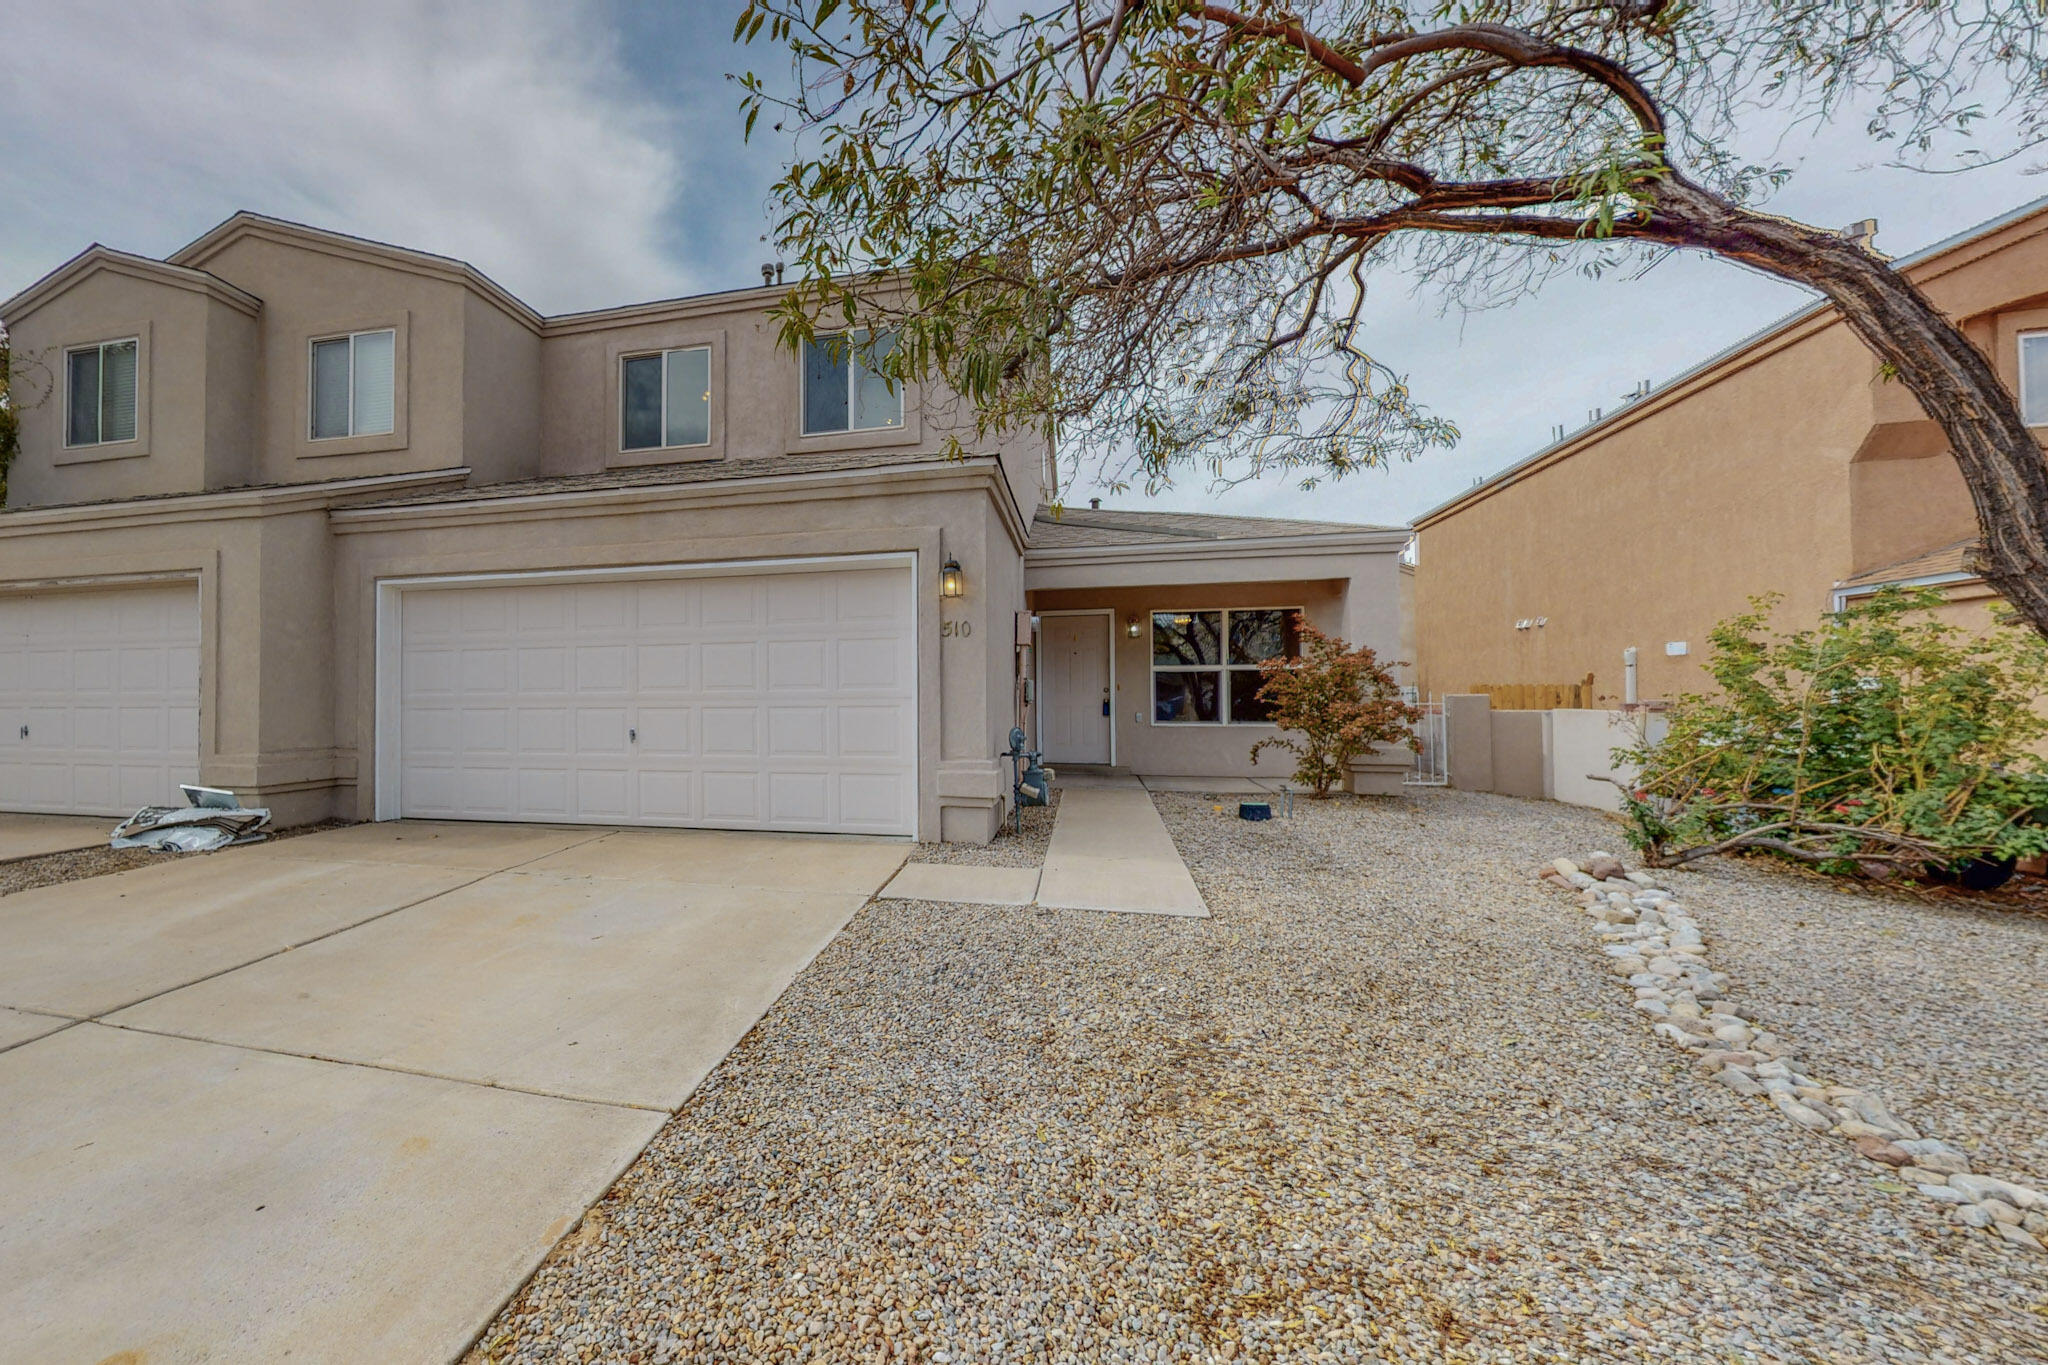 ''AS IS''  Close to I-25, Main Street, and Los Lunas High School.  With recent renovations, the following items are all NEW: Roof, Swamp Cooler, Kitchen Sink, Paint, Flooring, Range, Dishwasher, Garbage Disposal. Toilets, and Bathtub in Master Bathroom.